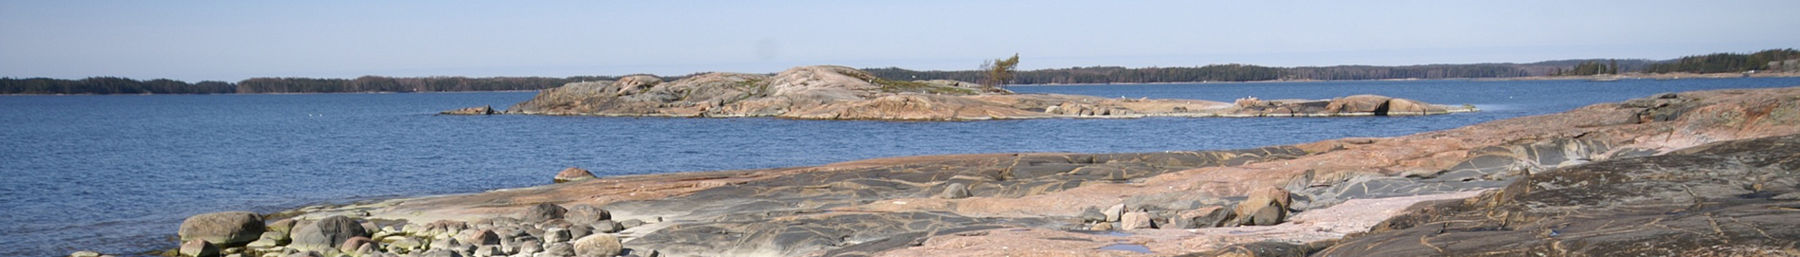 Kopparnäs recreation area